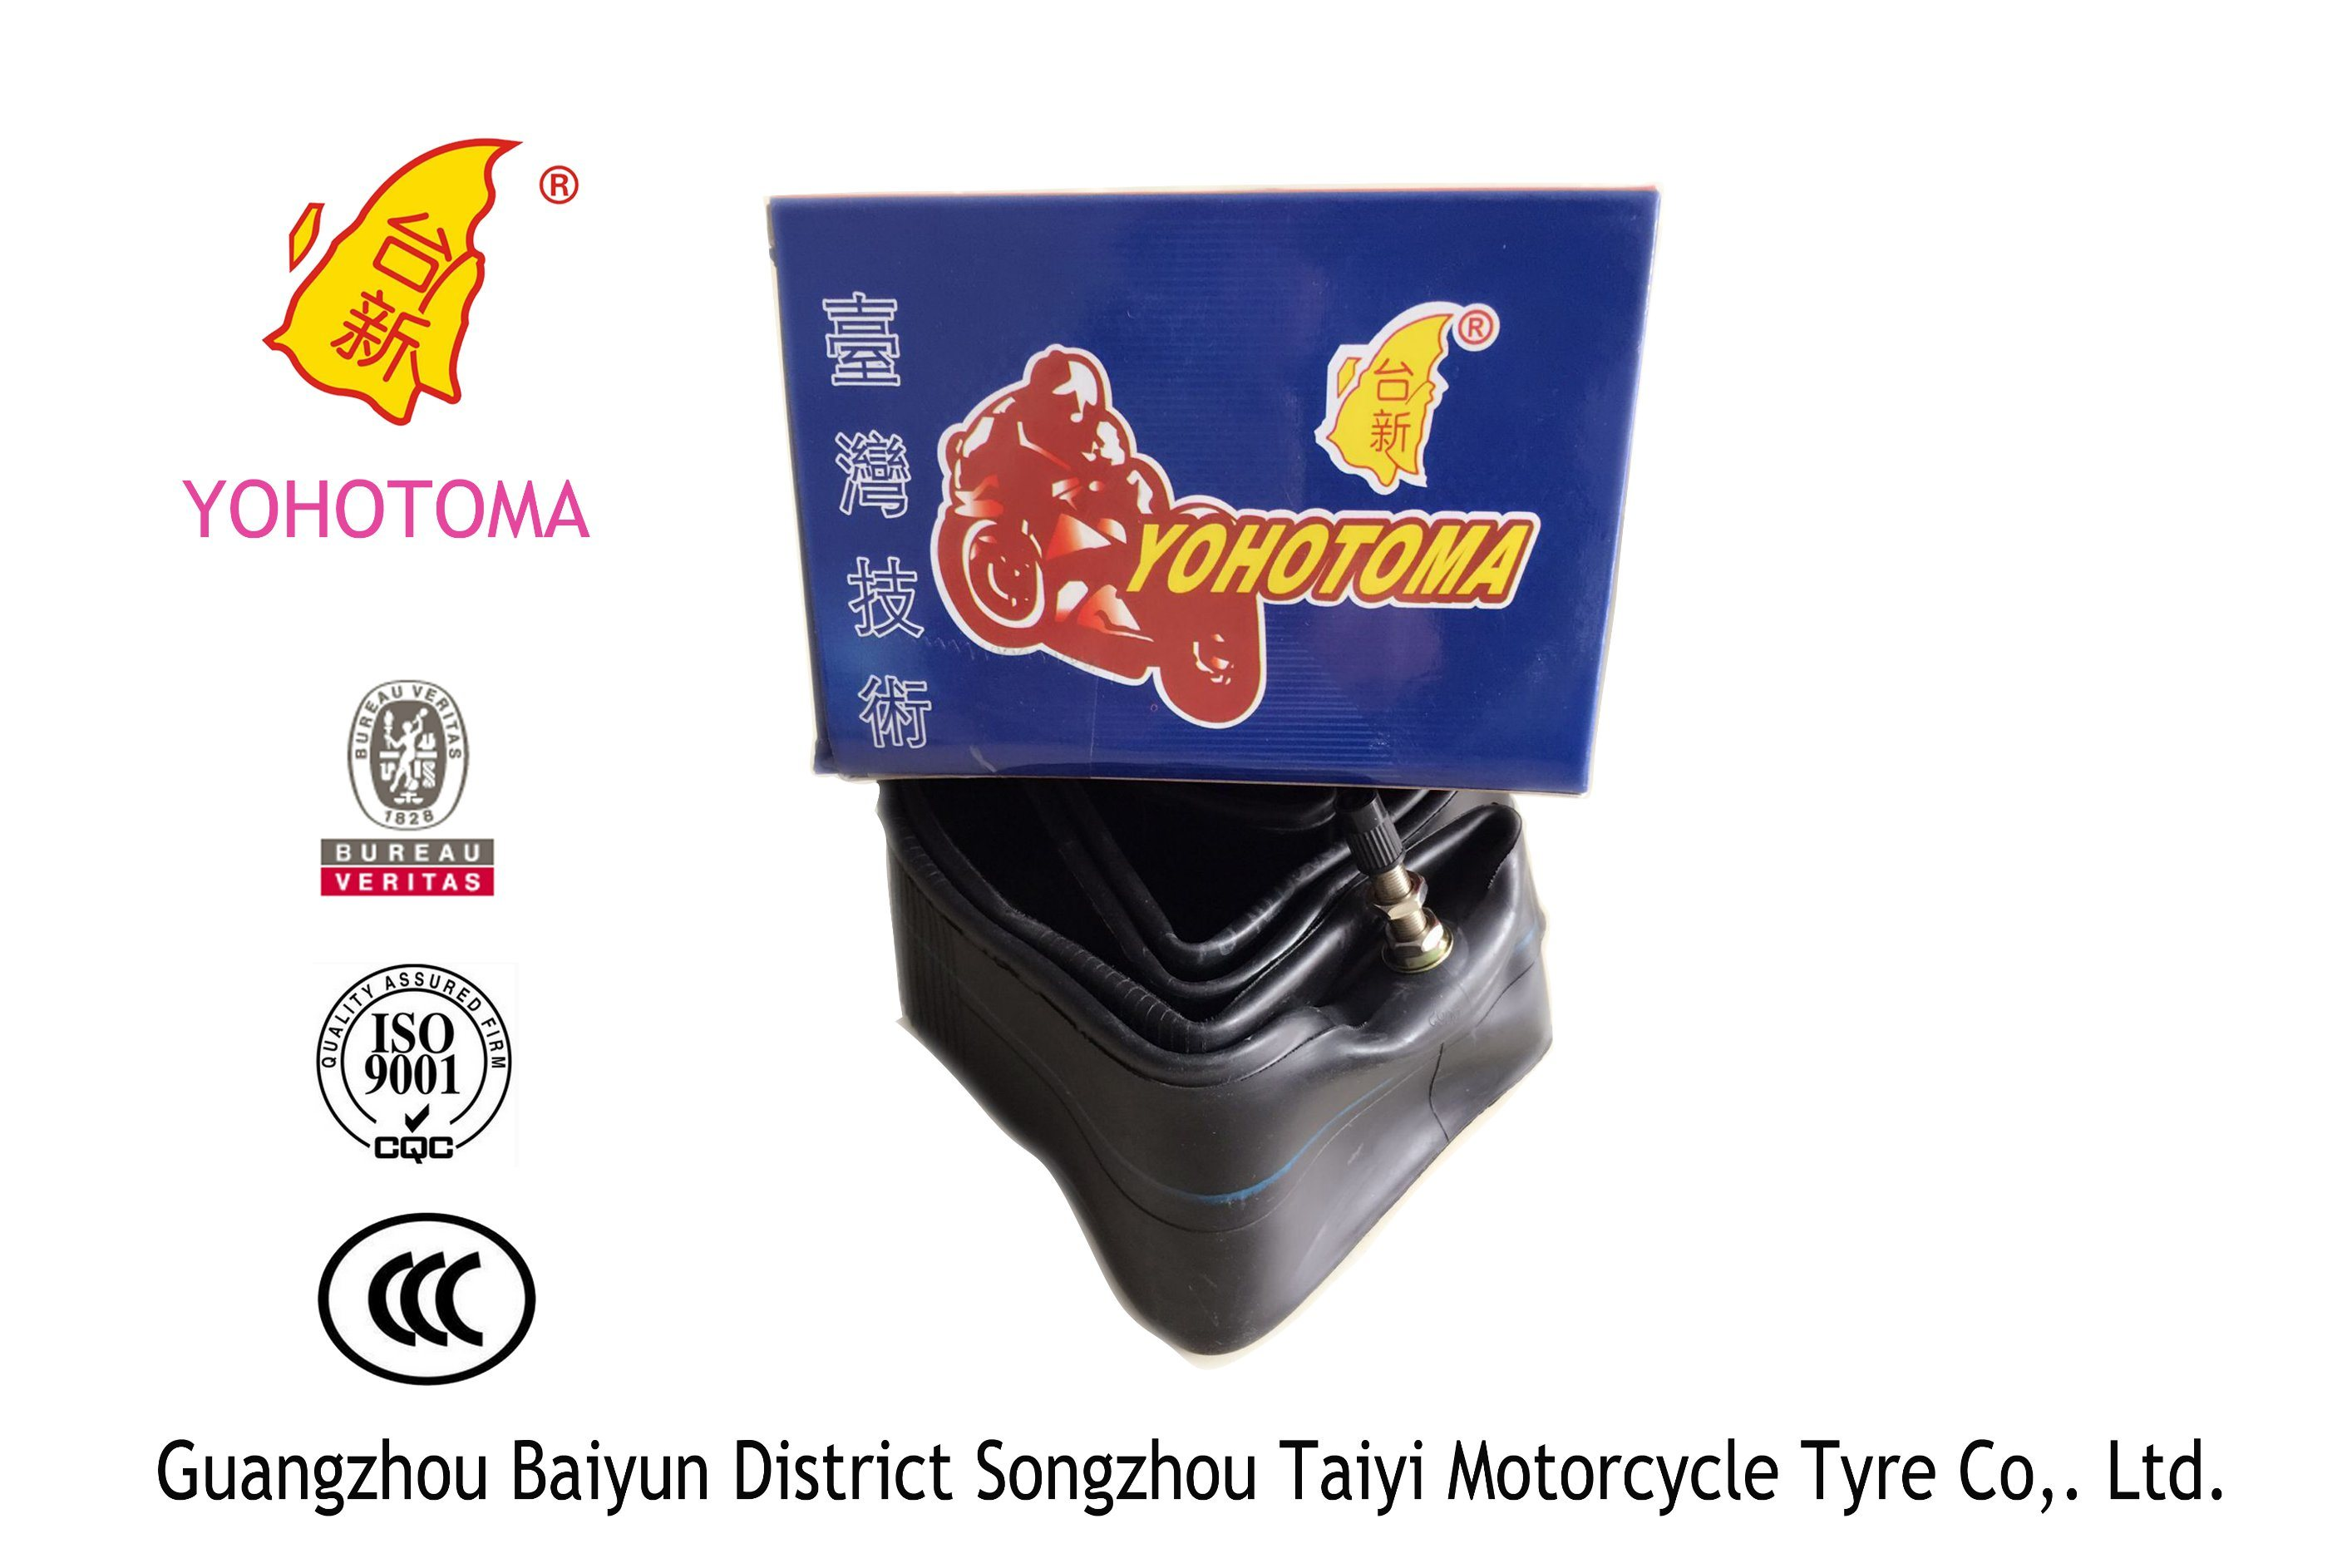 High Quality and Long Life Motorcycle Tyre (300-17 Yt-257 Tt)